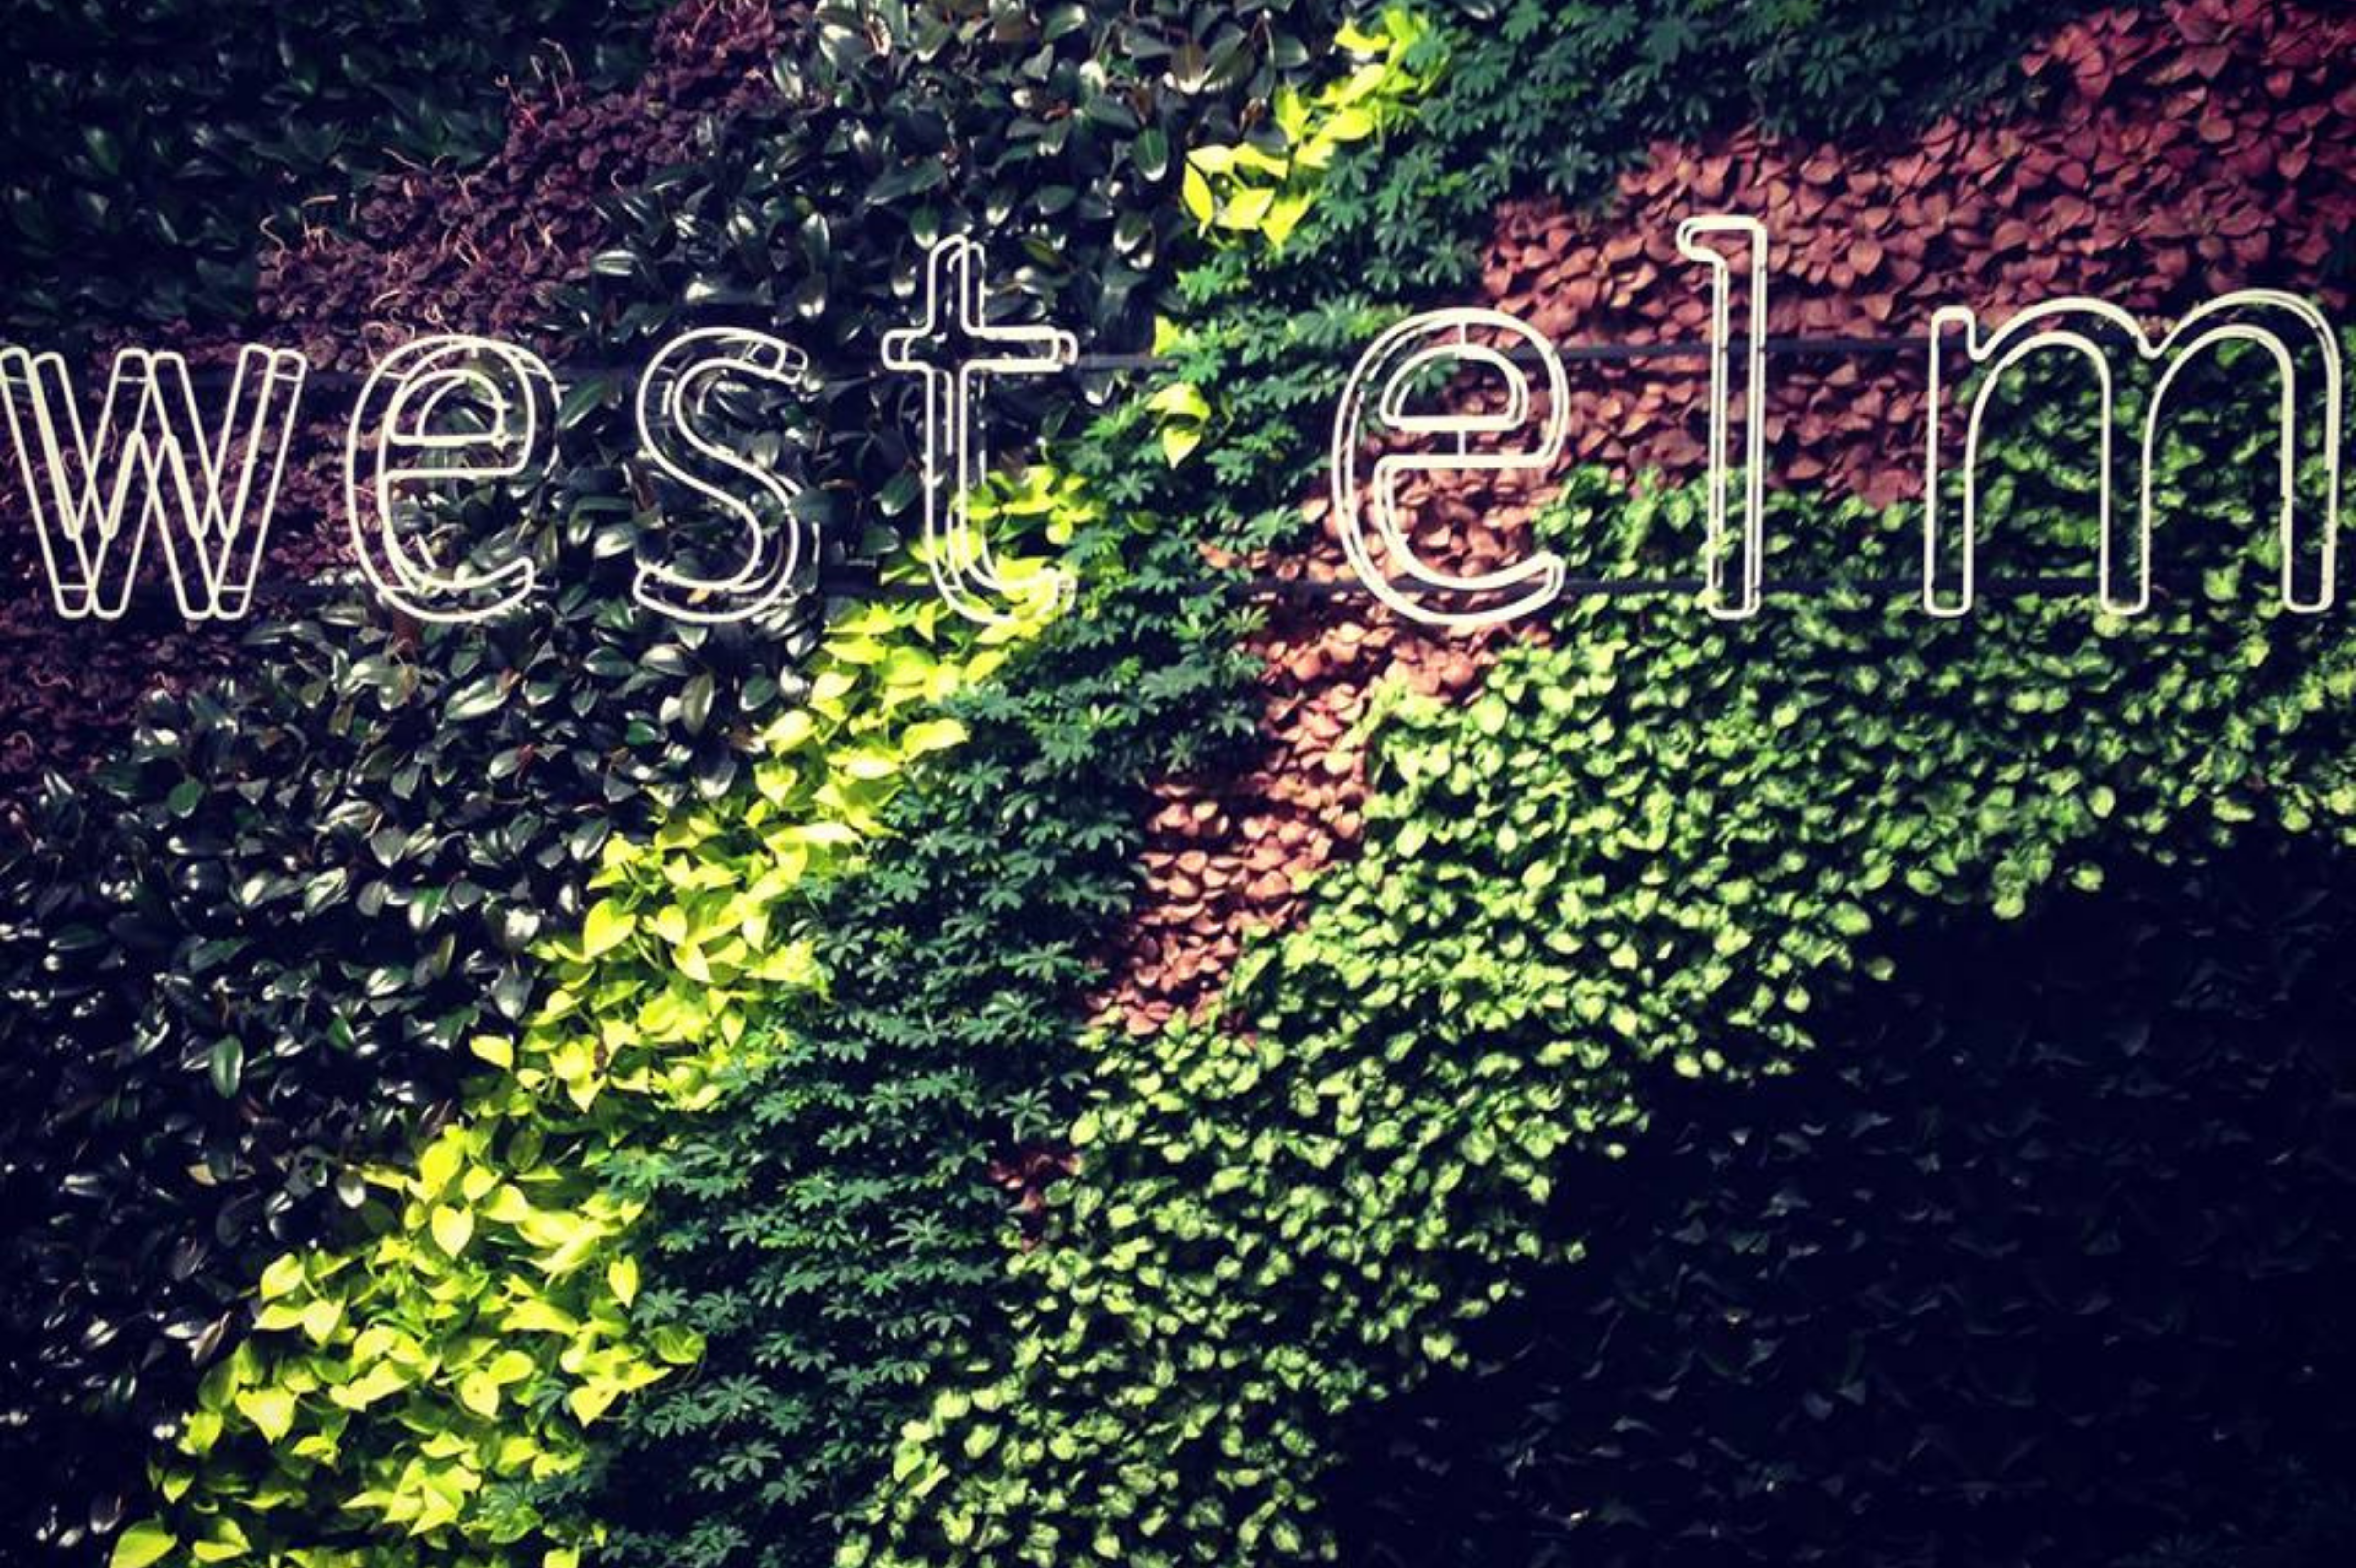 """A 538 sq ft """"living wall"""" around the main staircase of West Elm's UK flagship store in London.  Portview draped the wall in 3,226 fresh potted plants to help increase people's exposure to living plants and connect with nature."""